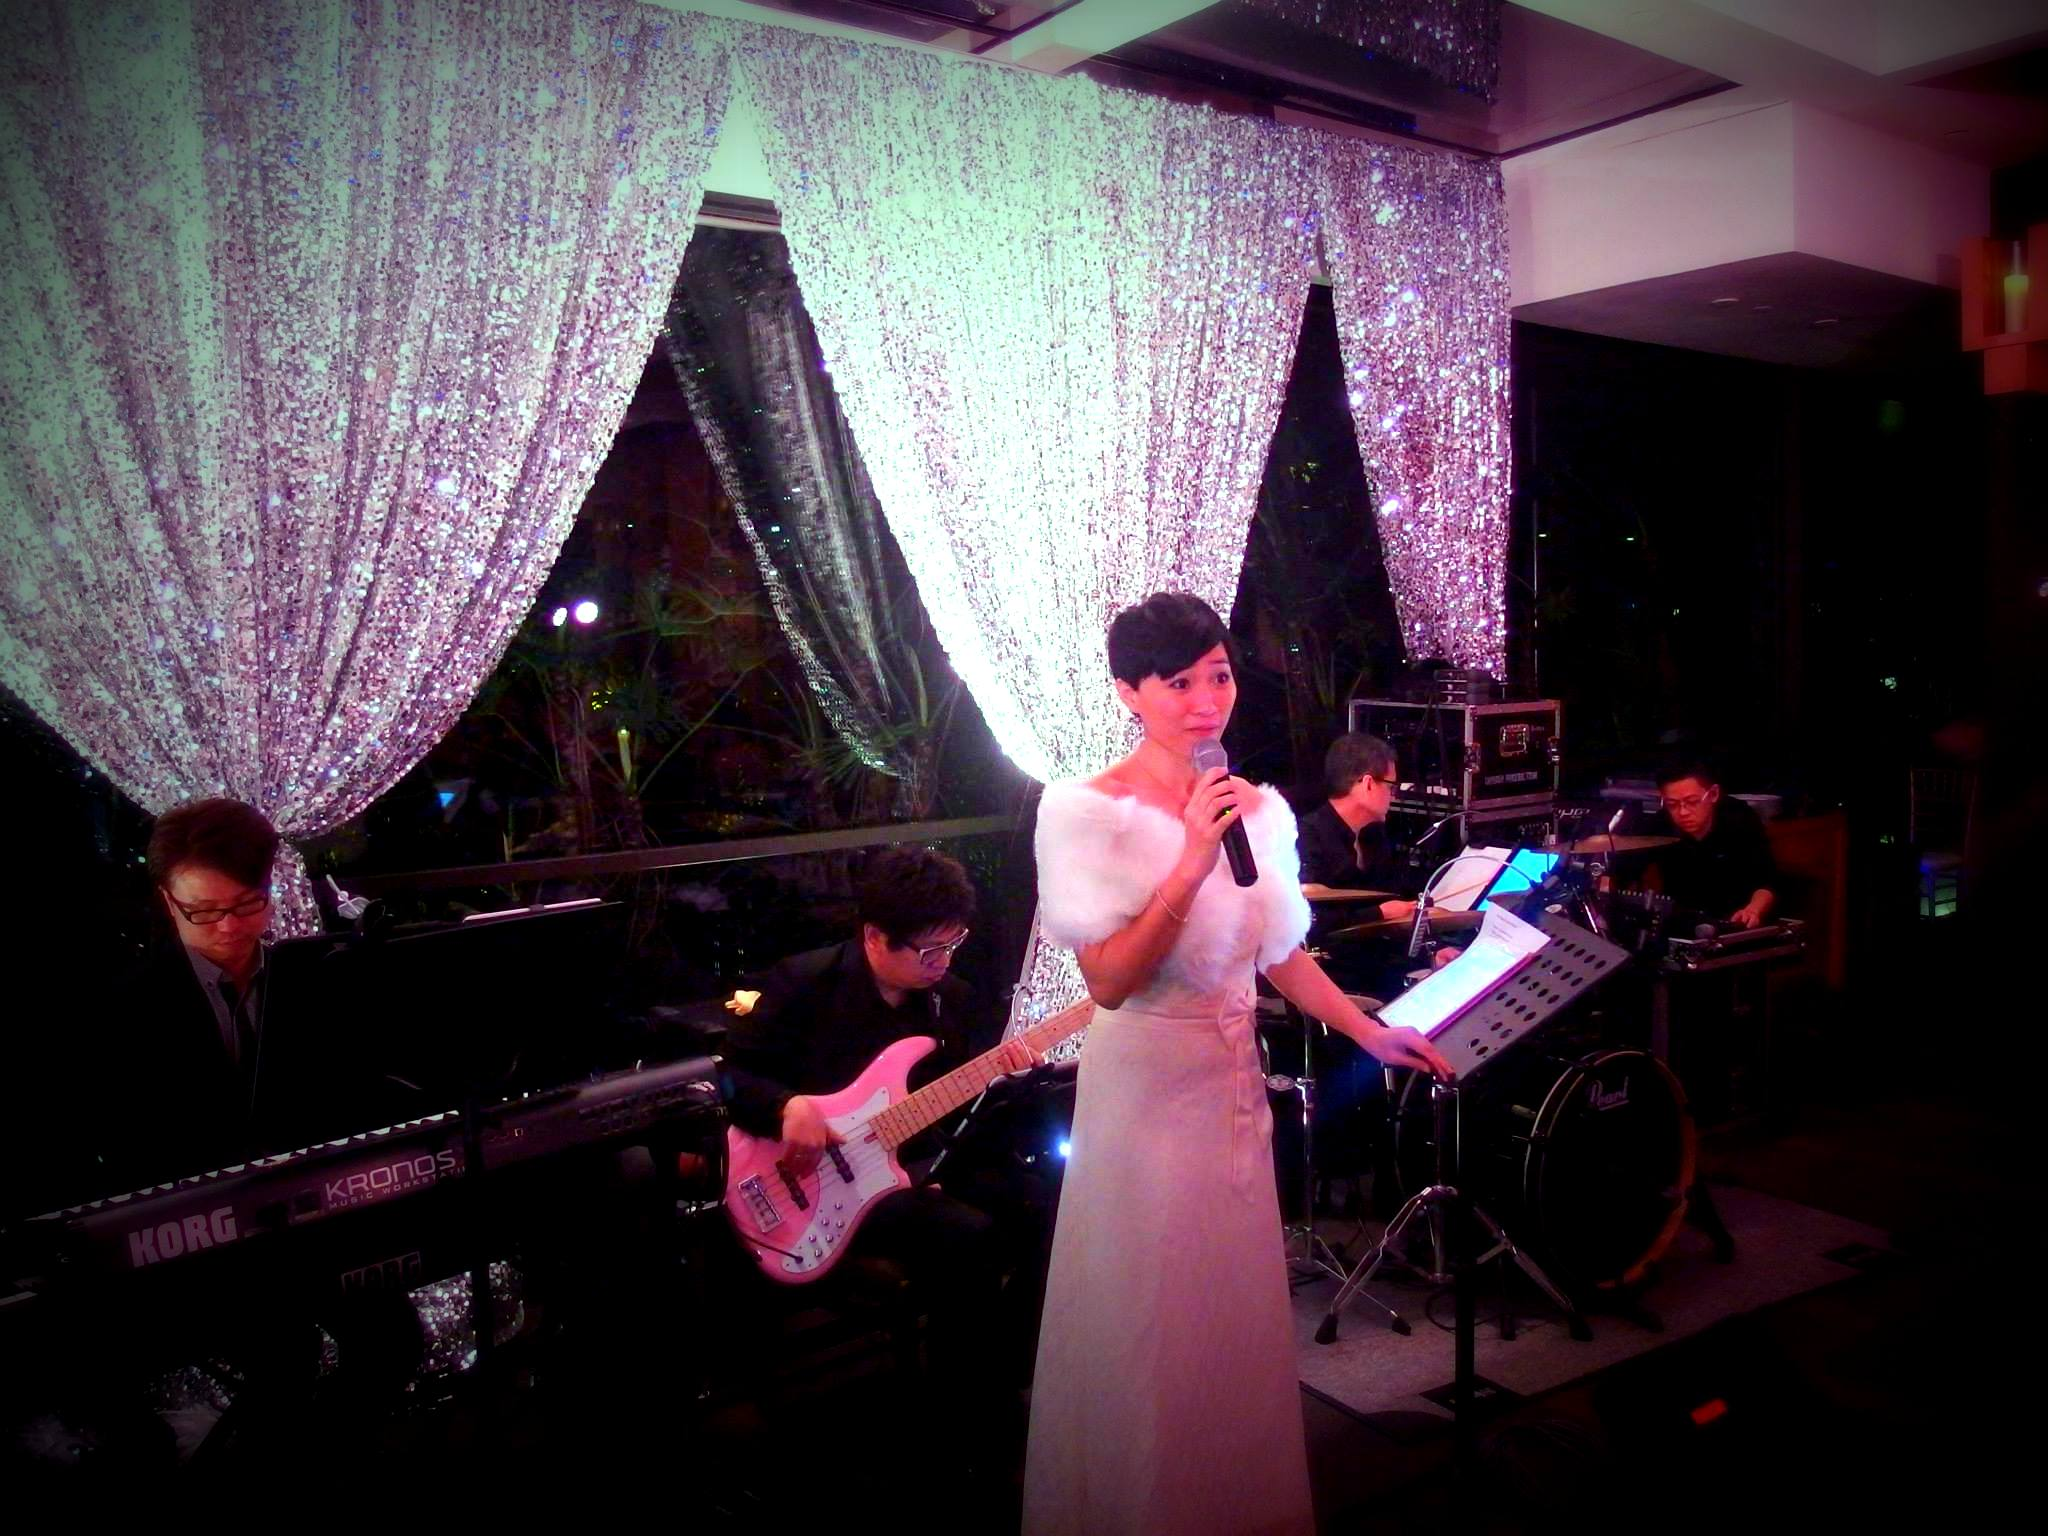 Unison Production Live Music band performance - birthday party at The Pool House at Grand Hyatt